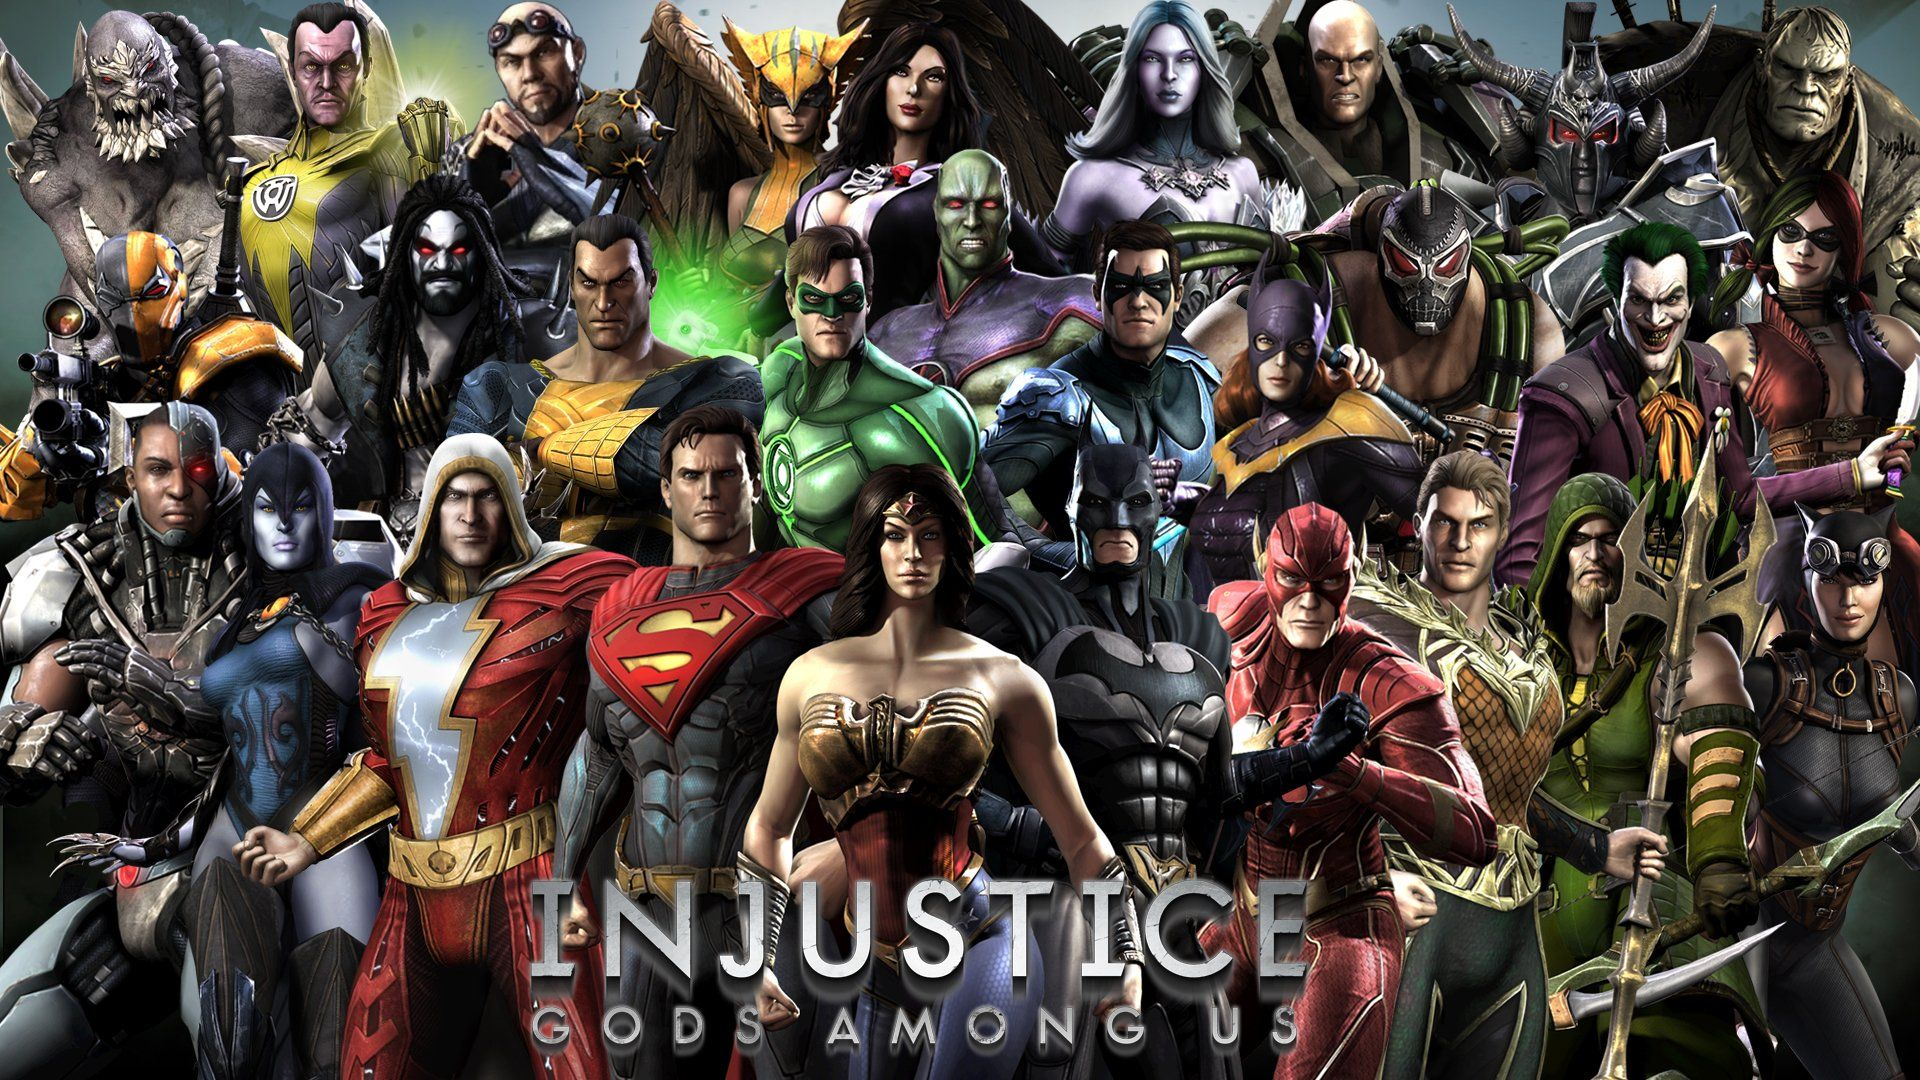 102 Injustice Gods Among Us Hd Wallpapers Backgrounds Injustice Injustice Game Cheat Online